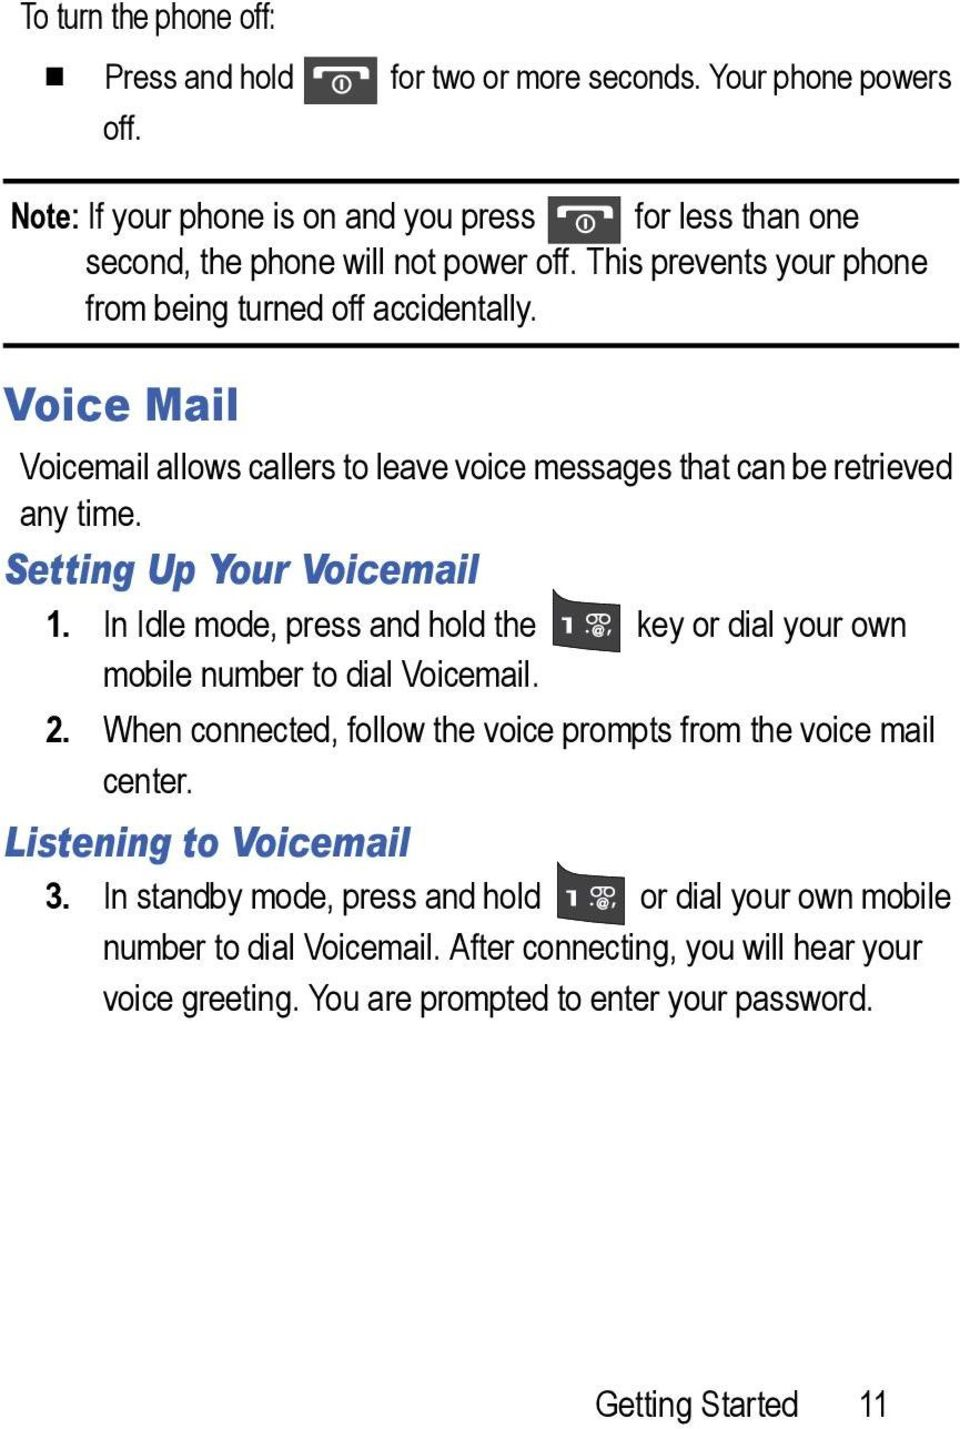 In Idle mode, press and hold the key or dial your own mobile number to dial Voicemail. 2. When connected, follow the voice prompts from the voice mail center. Listening to Voicemail 3.